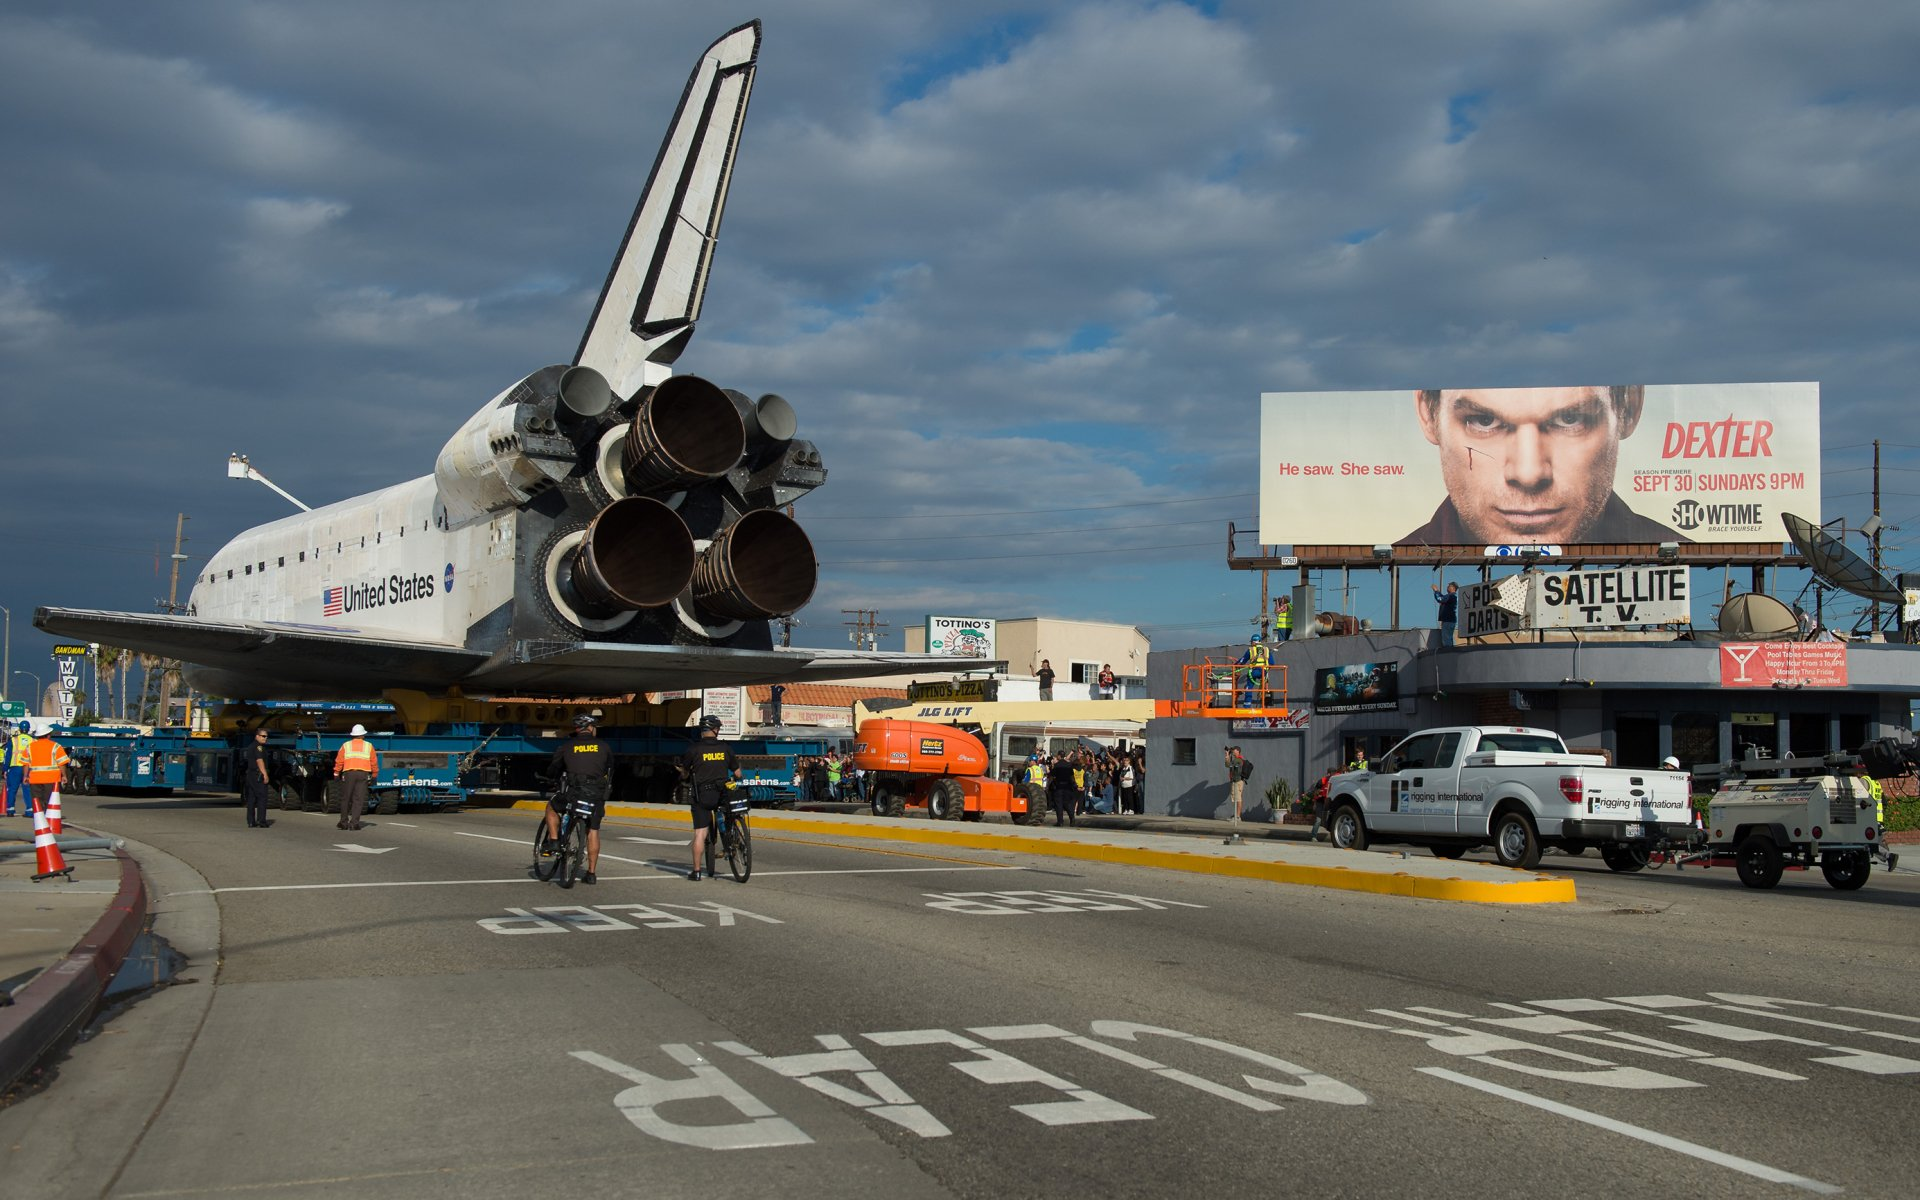 Vehicles - Space Shuttle  Shuttle Airplane NASA Wallpaper